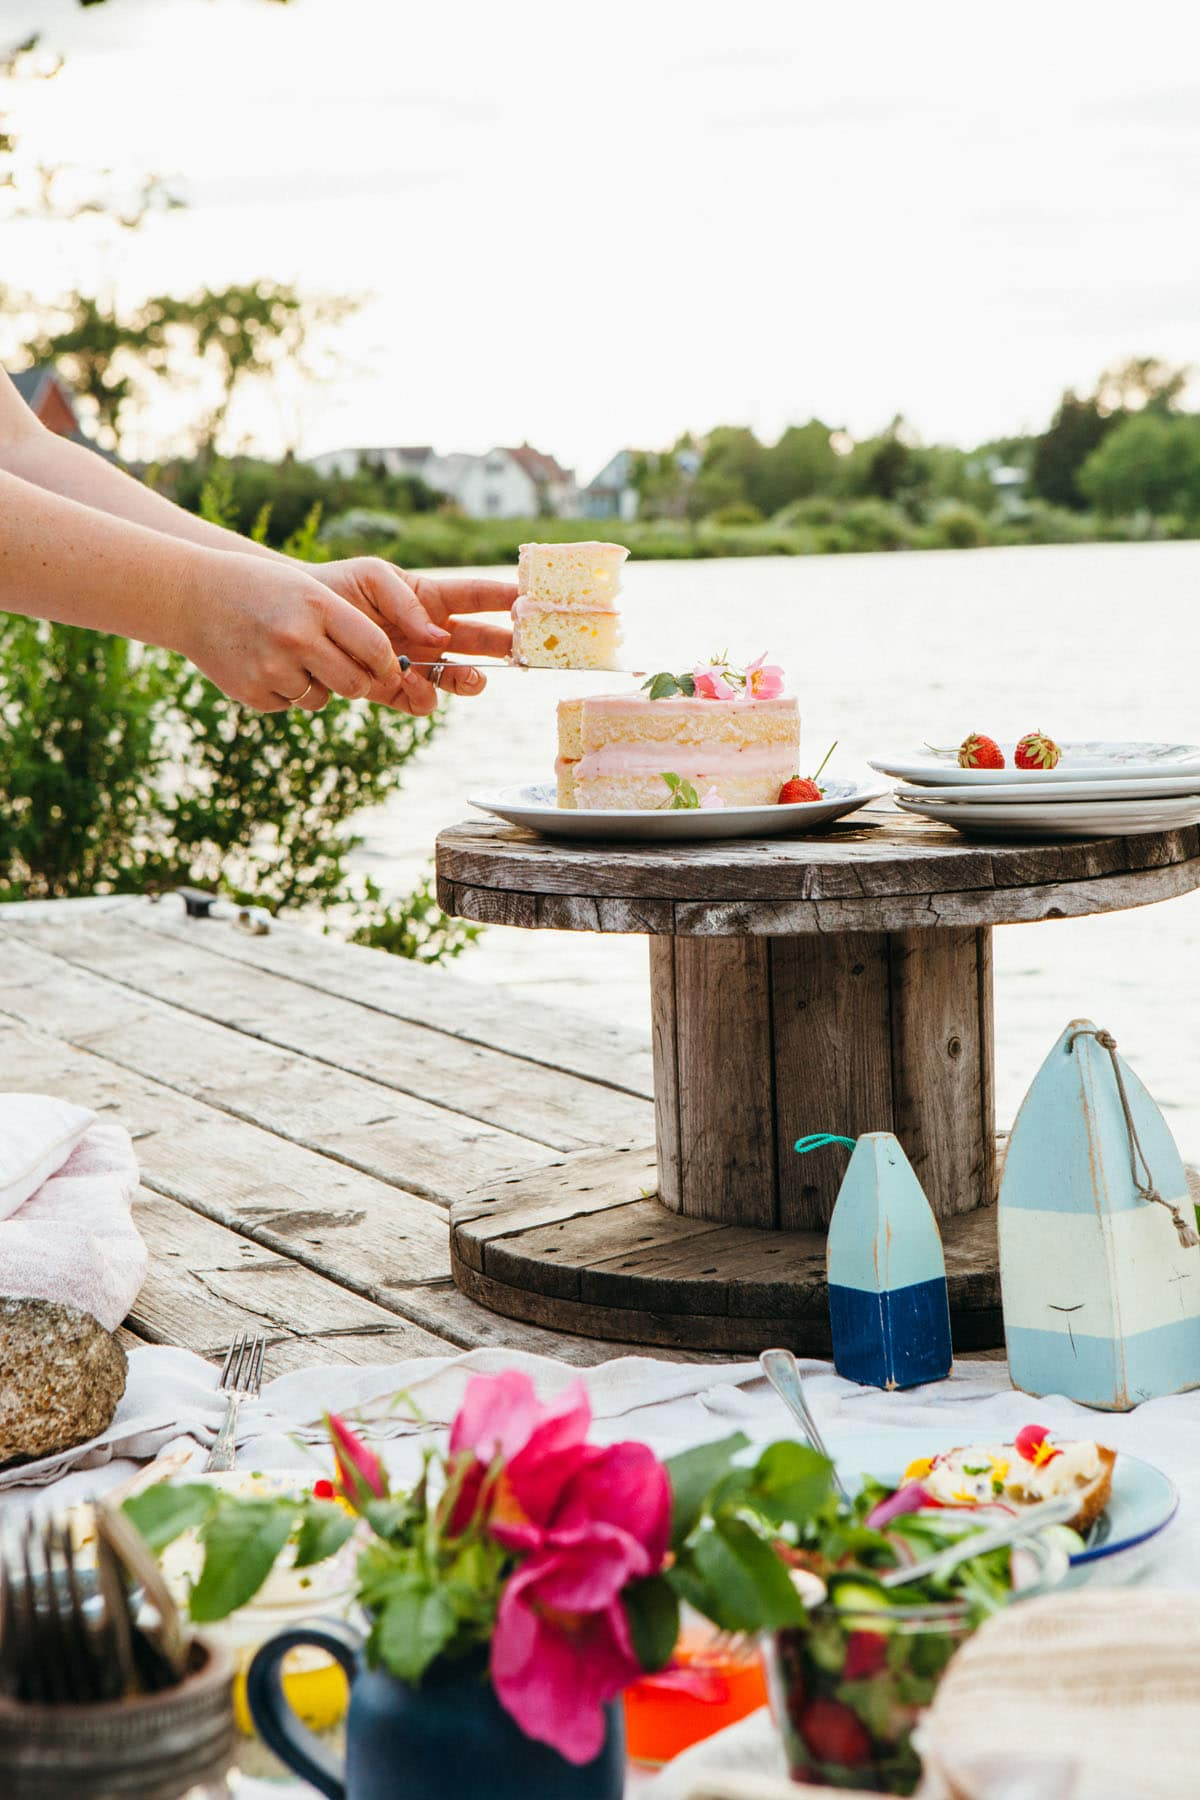 A woman's hands holding a piece of cake up after slicing it from a whole cake on a small table on a dock.